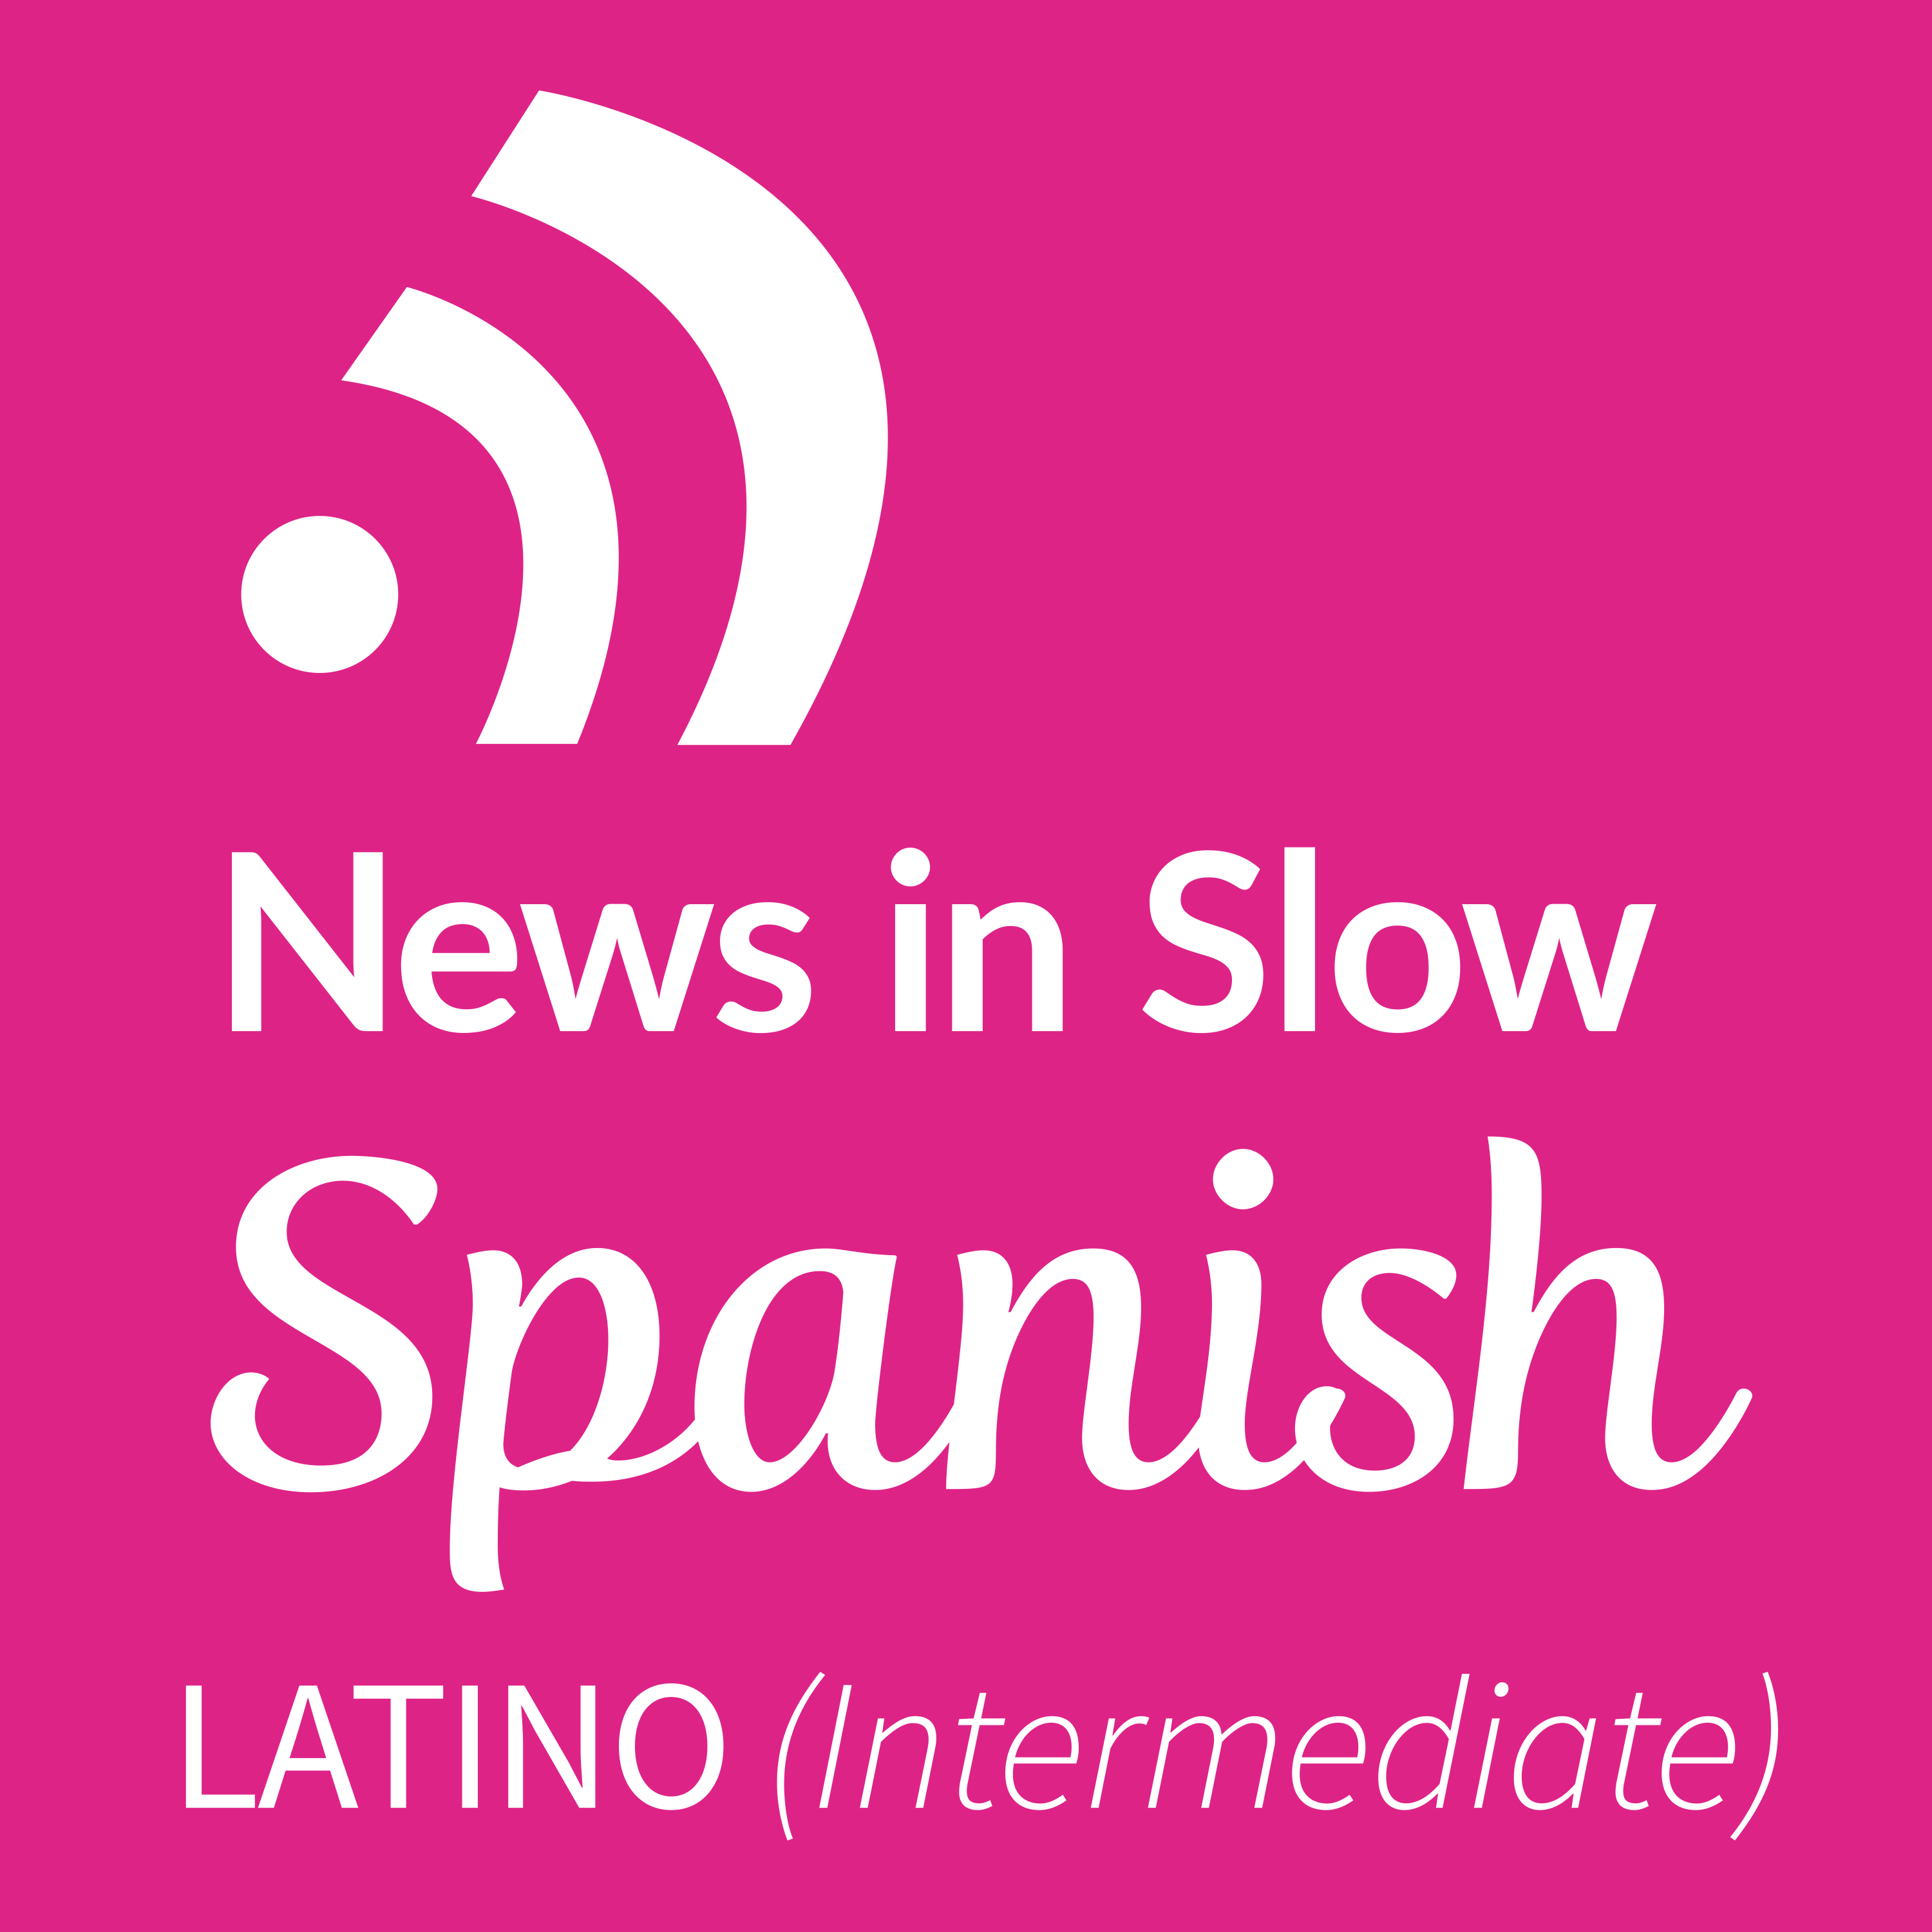 News in Slow Spanish Latino - # 150 - Spanish grammar, news and expressions